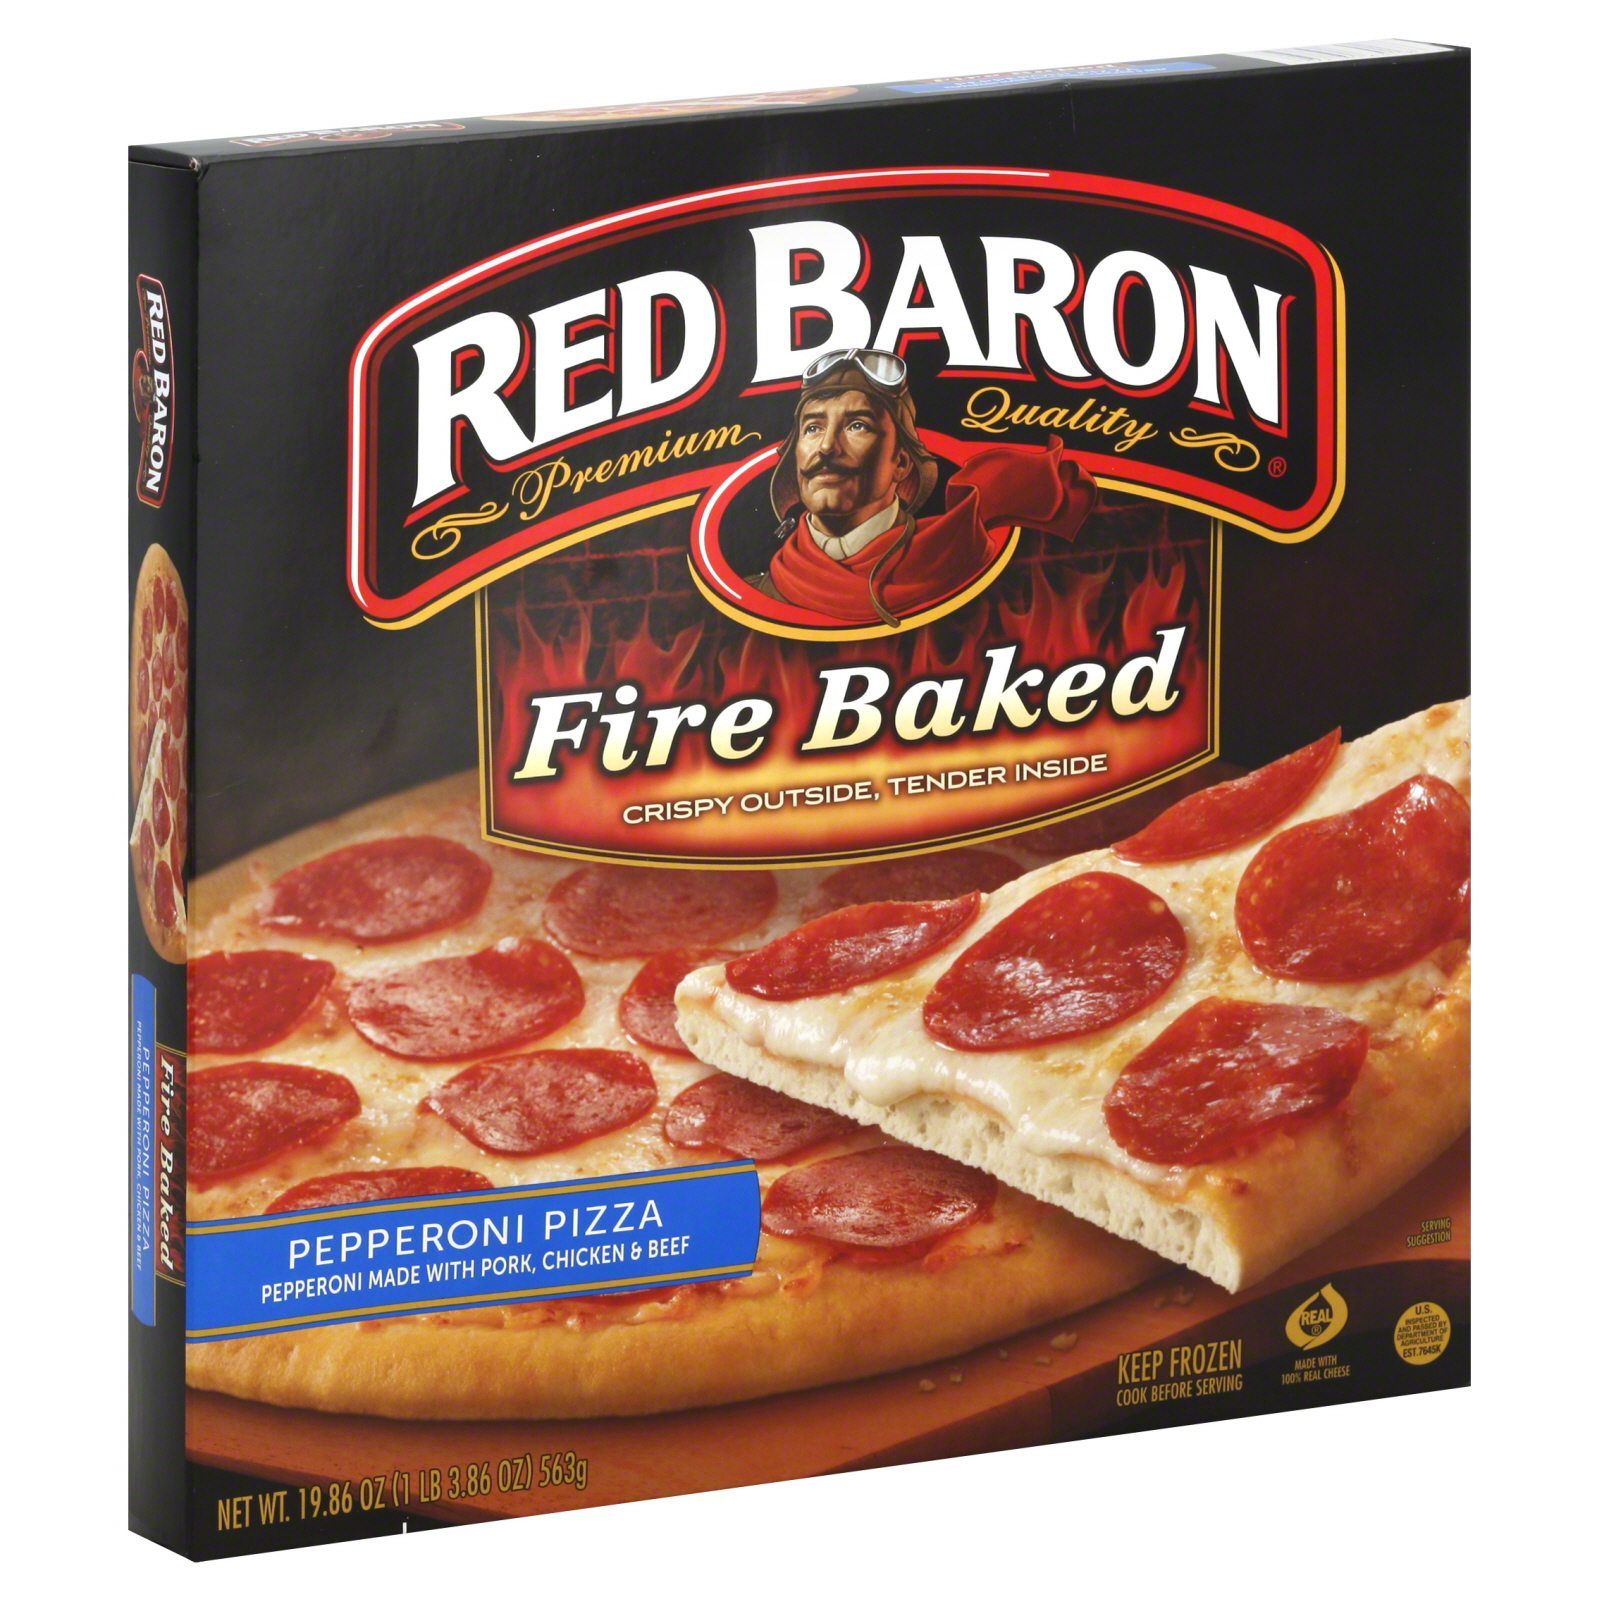 Pizzastand Oven Red Baron Pizza Fire Baked Pepperoni 19 86 Oz 1 Lb 3 86 Oz